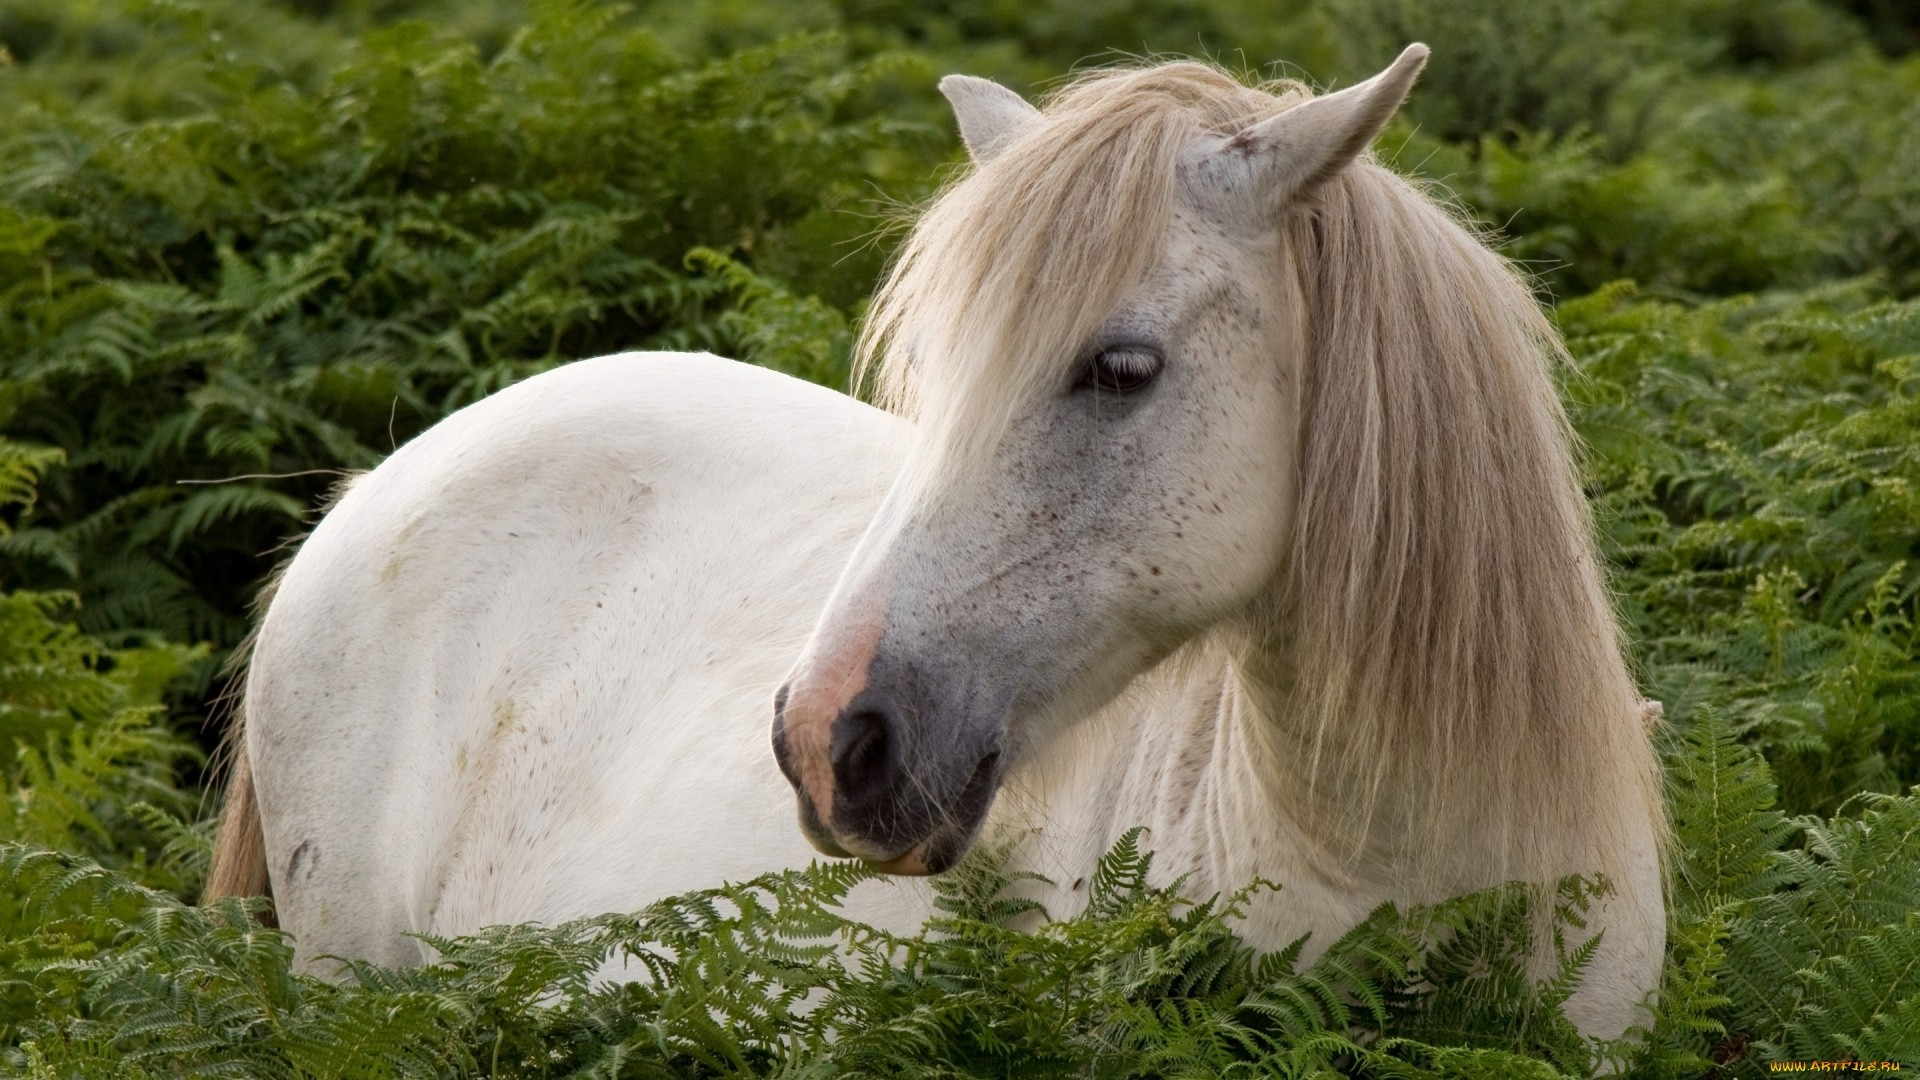 White Horse Free Wallpaper and Background